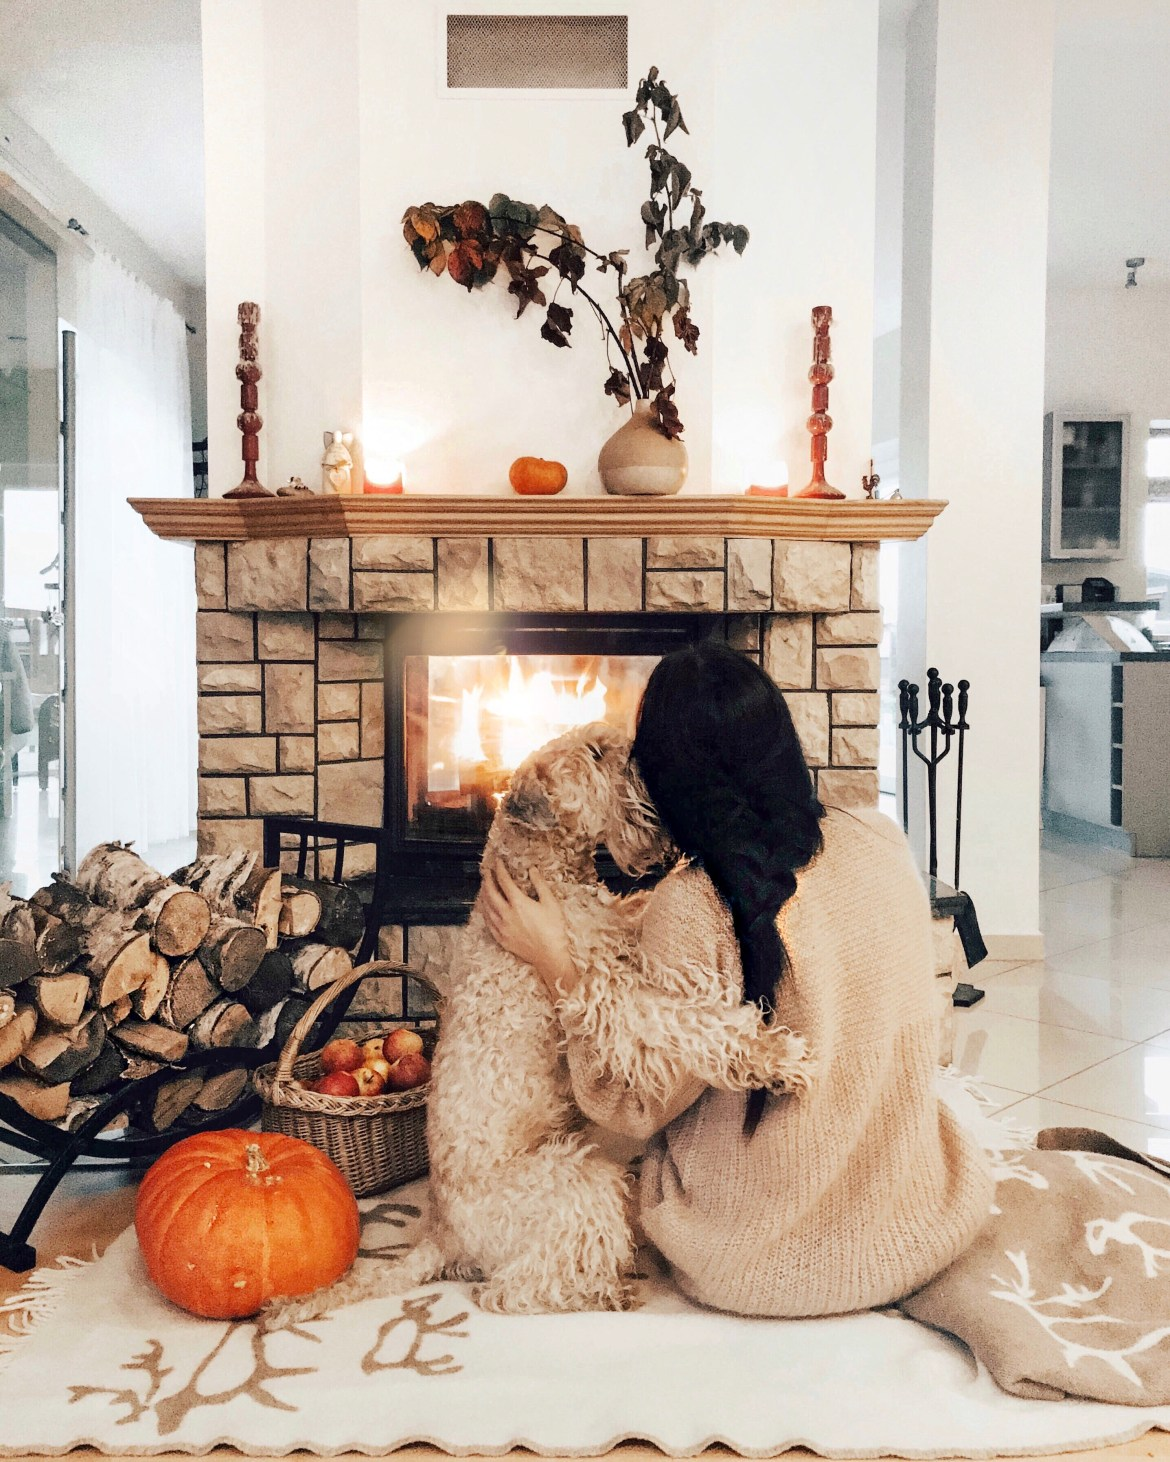 11 autumnal Instagram pictures that will make you feel cosy